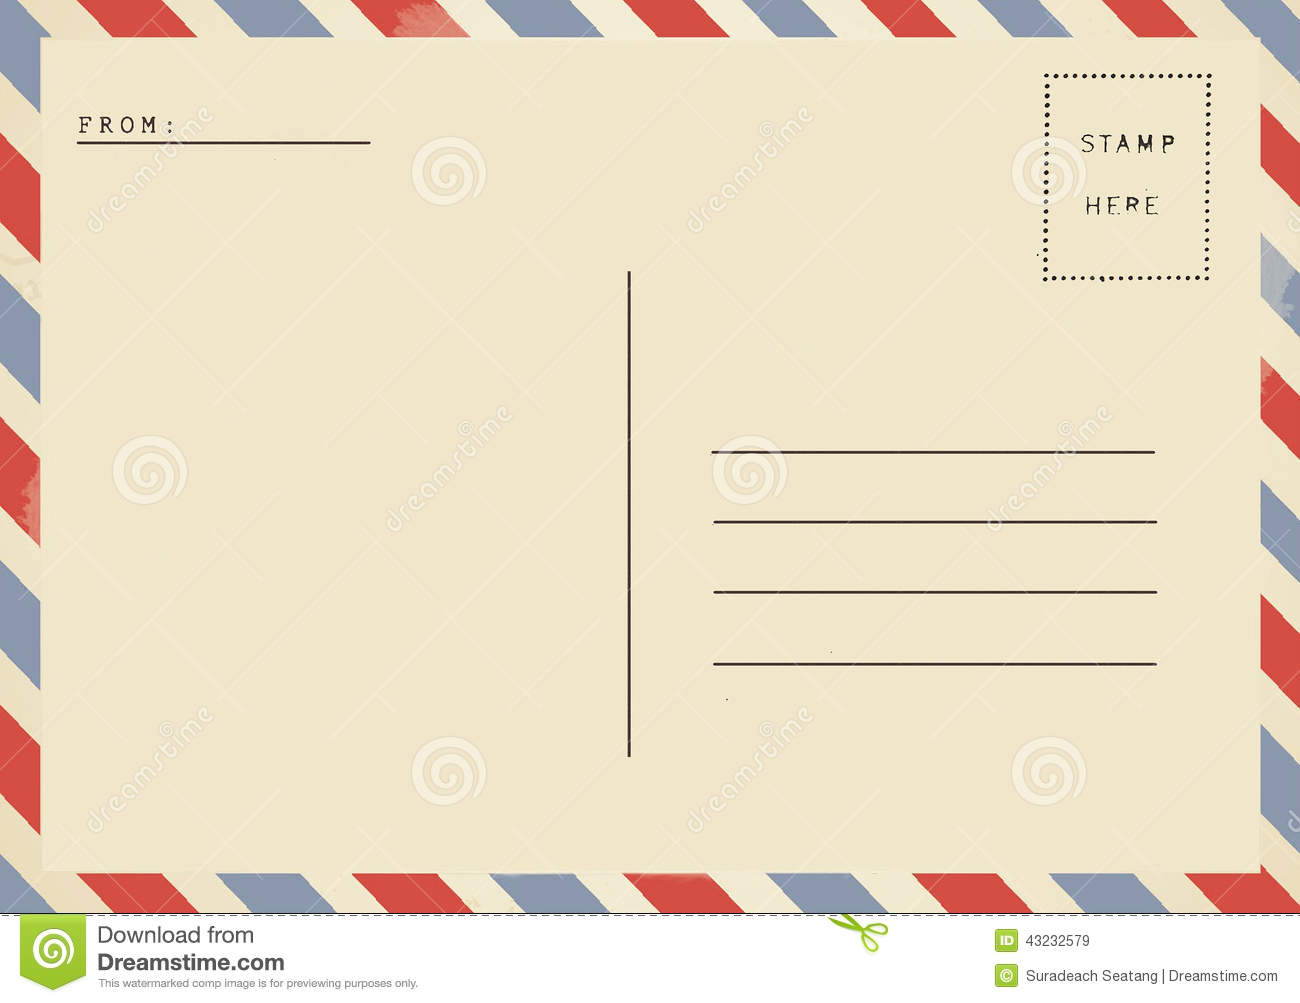 Free Postcard Invitation Templates was great invitations sample